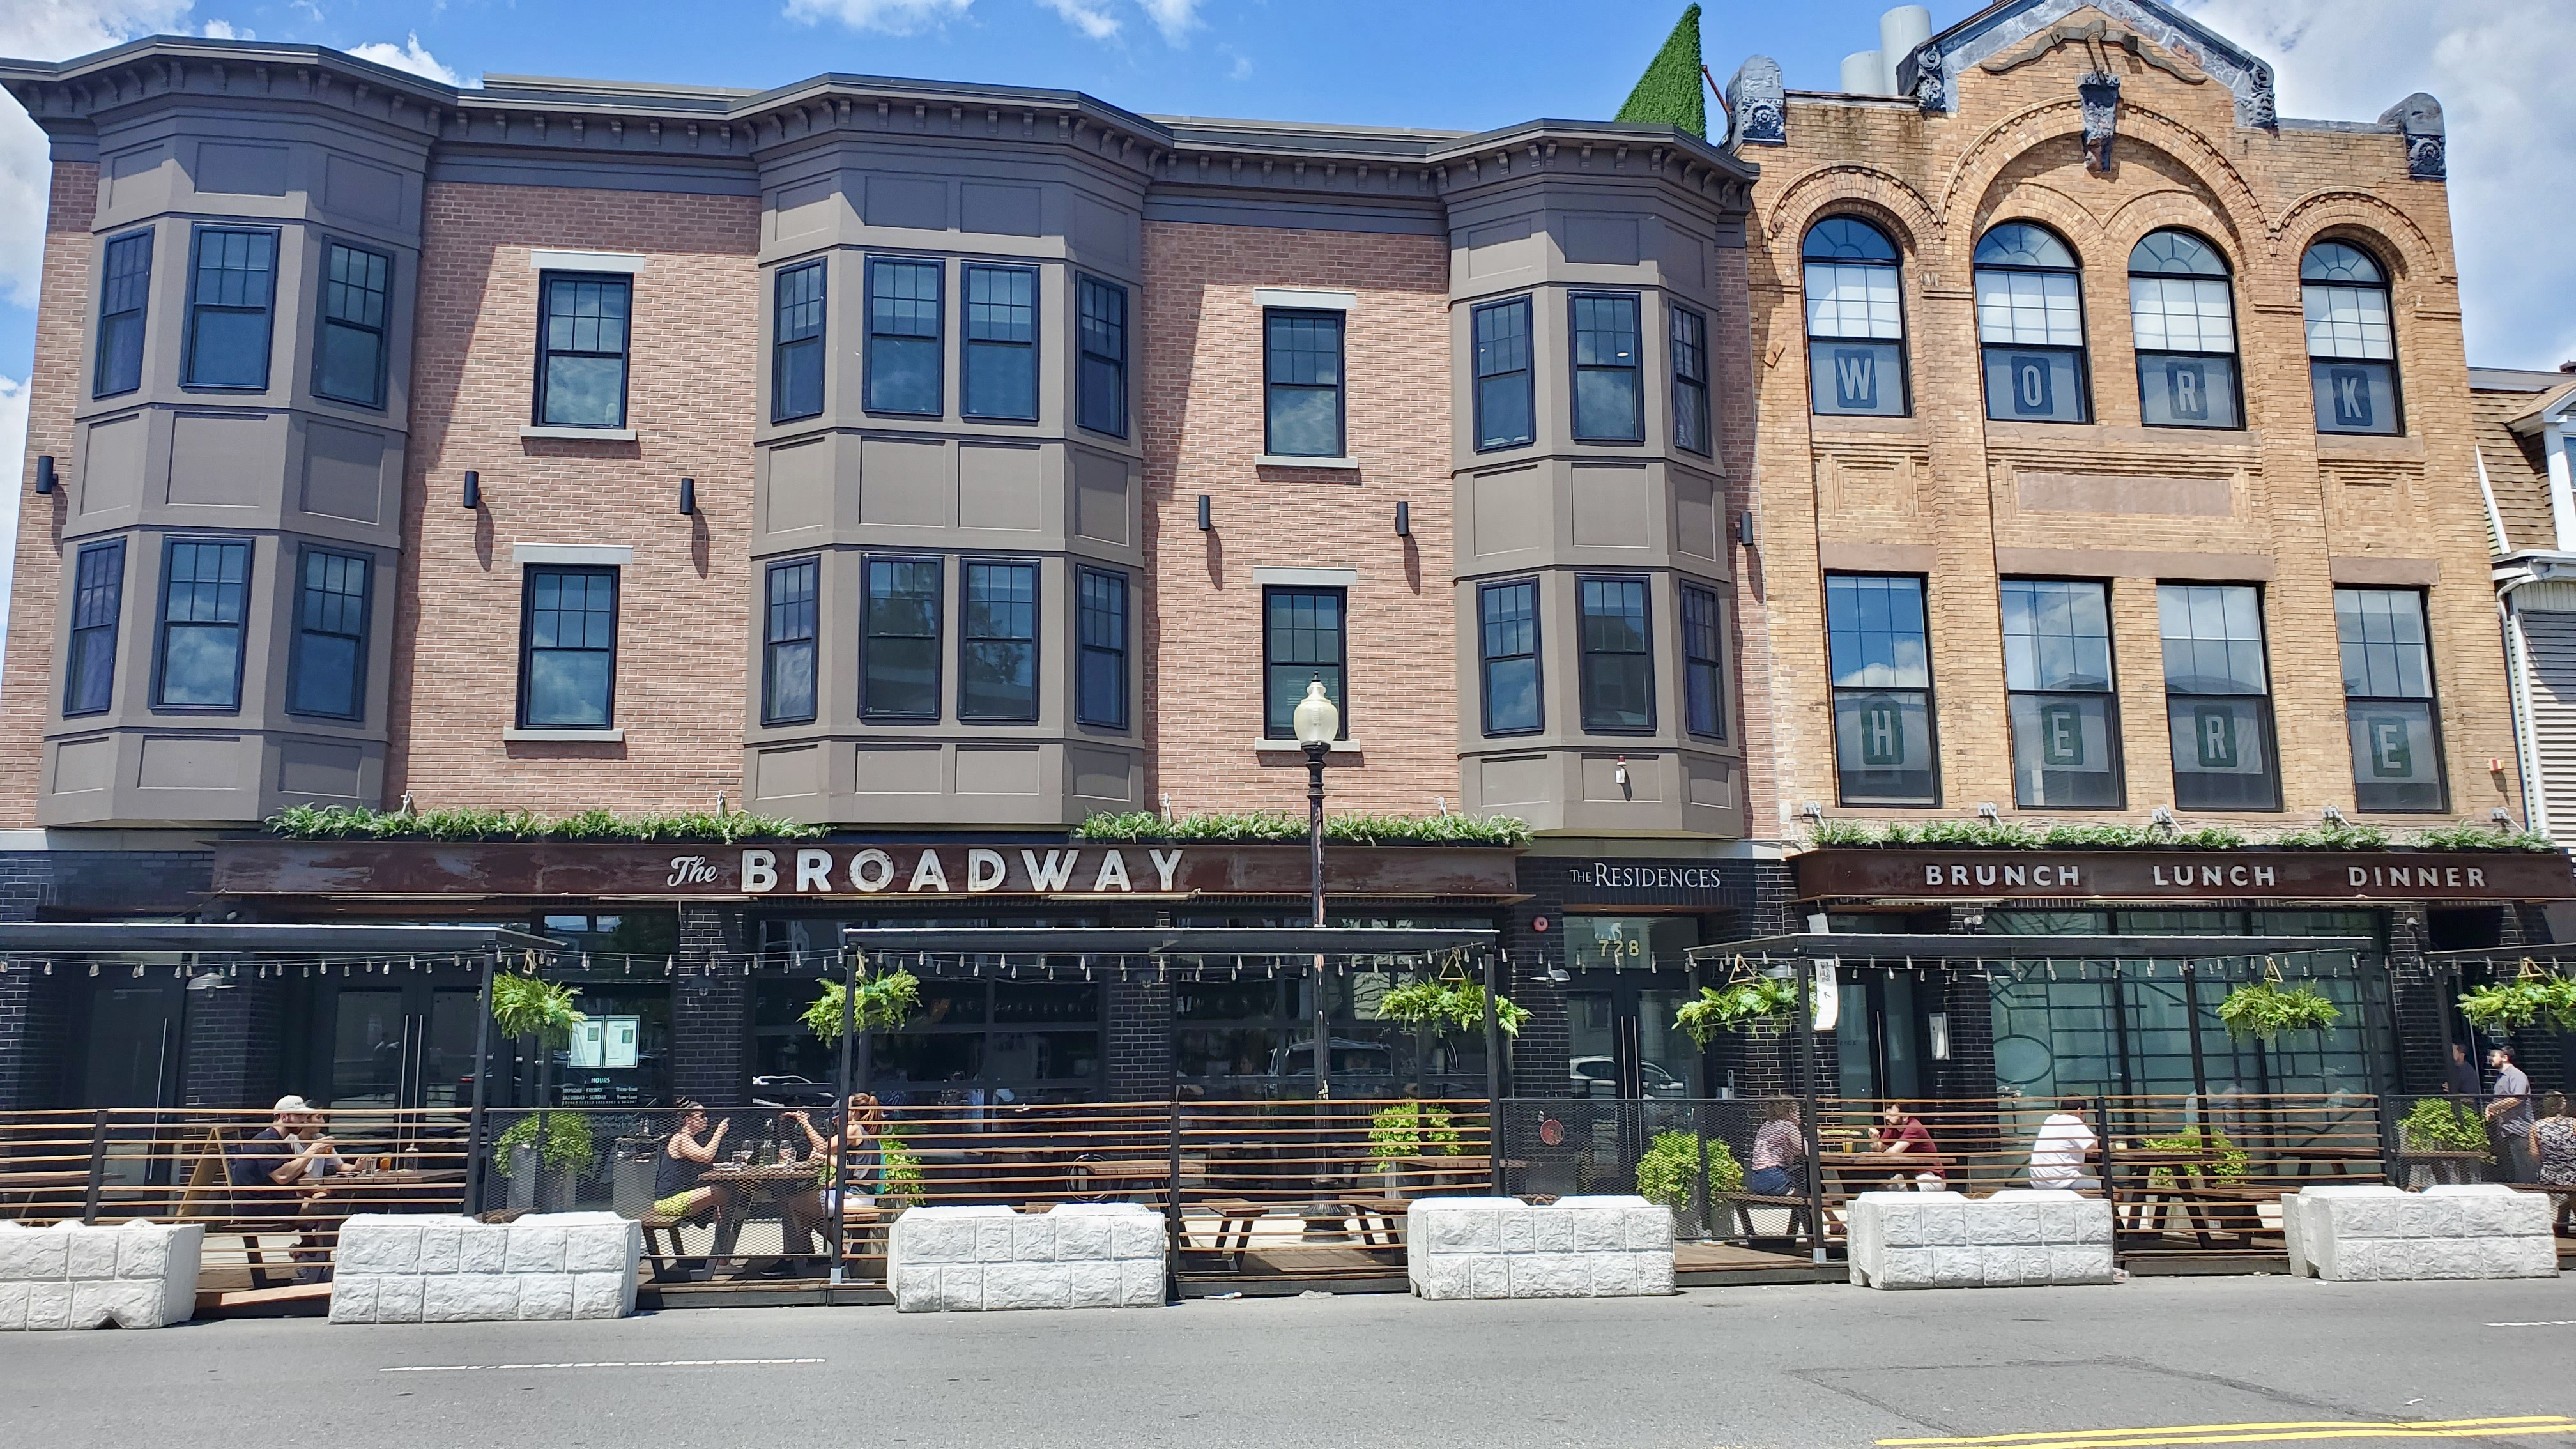 The Broadway Restaurant on East Broadway, South Boston